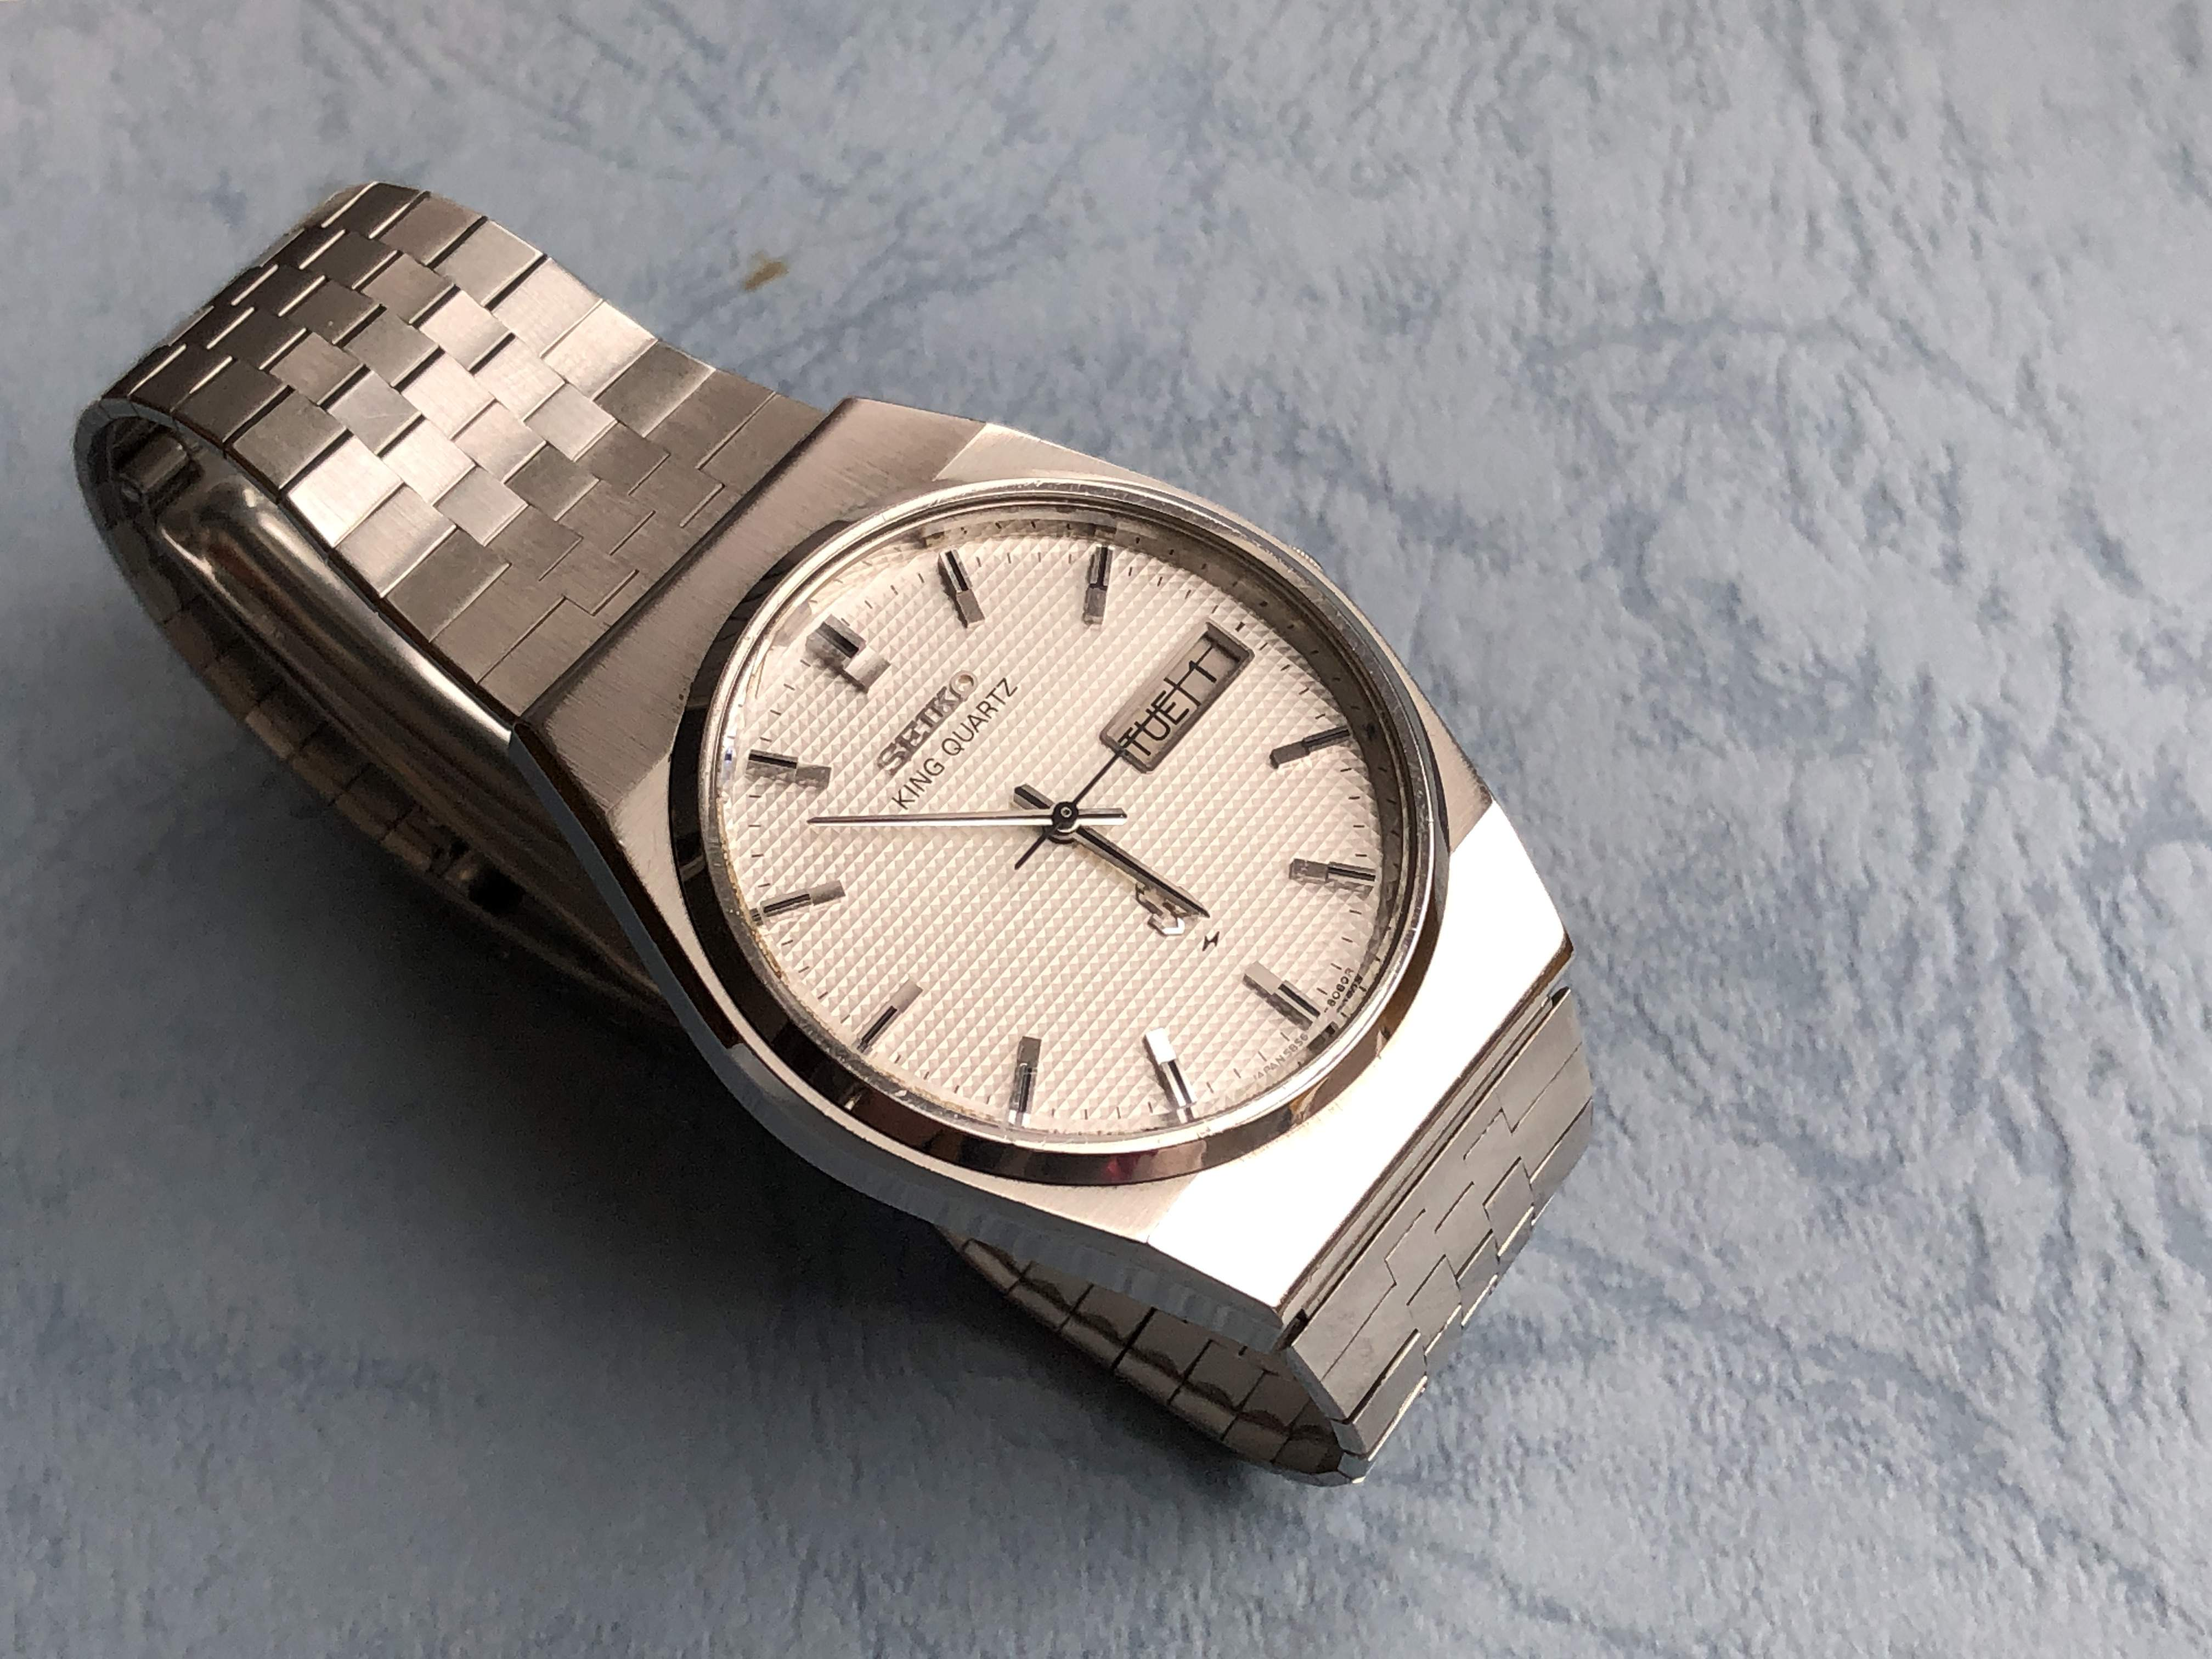 Seiko King Quartz 5856-8070 (Sold)